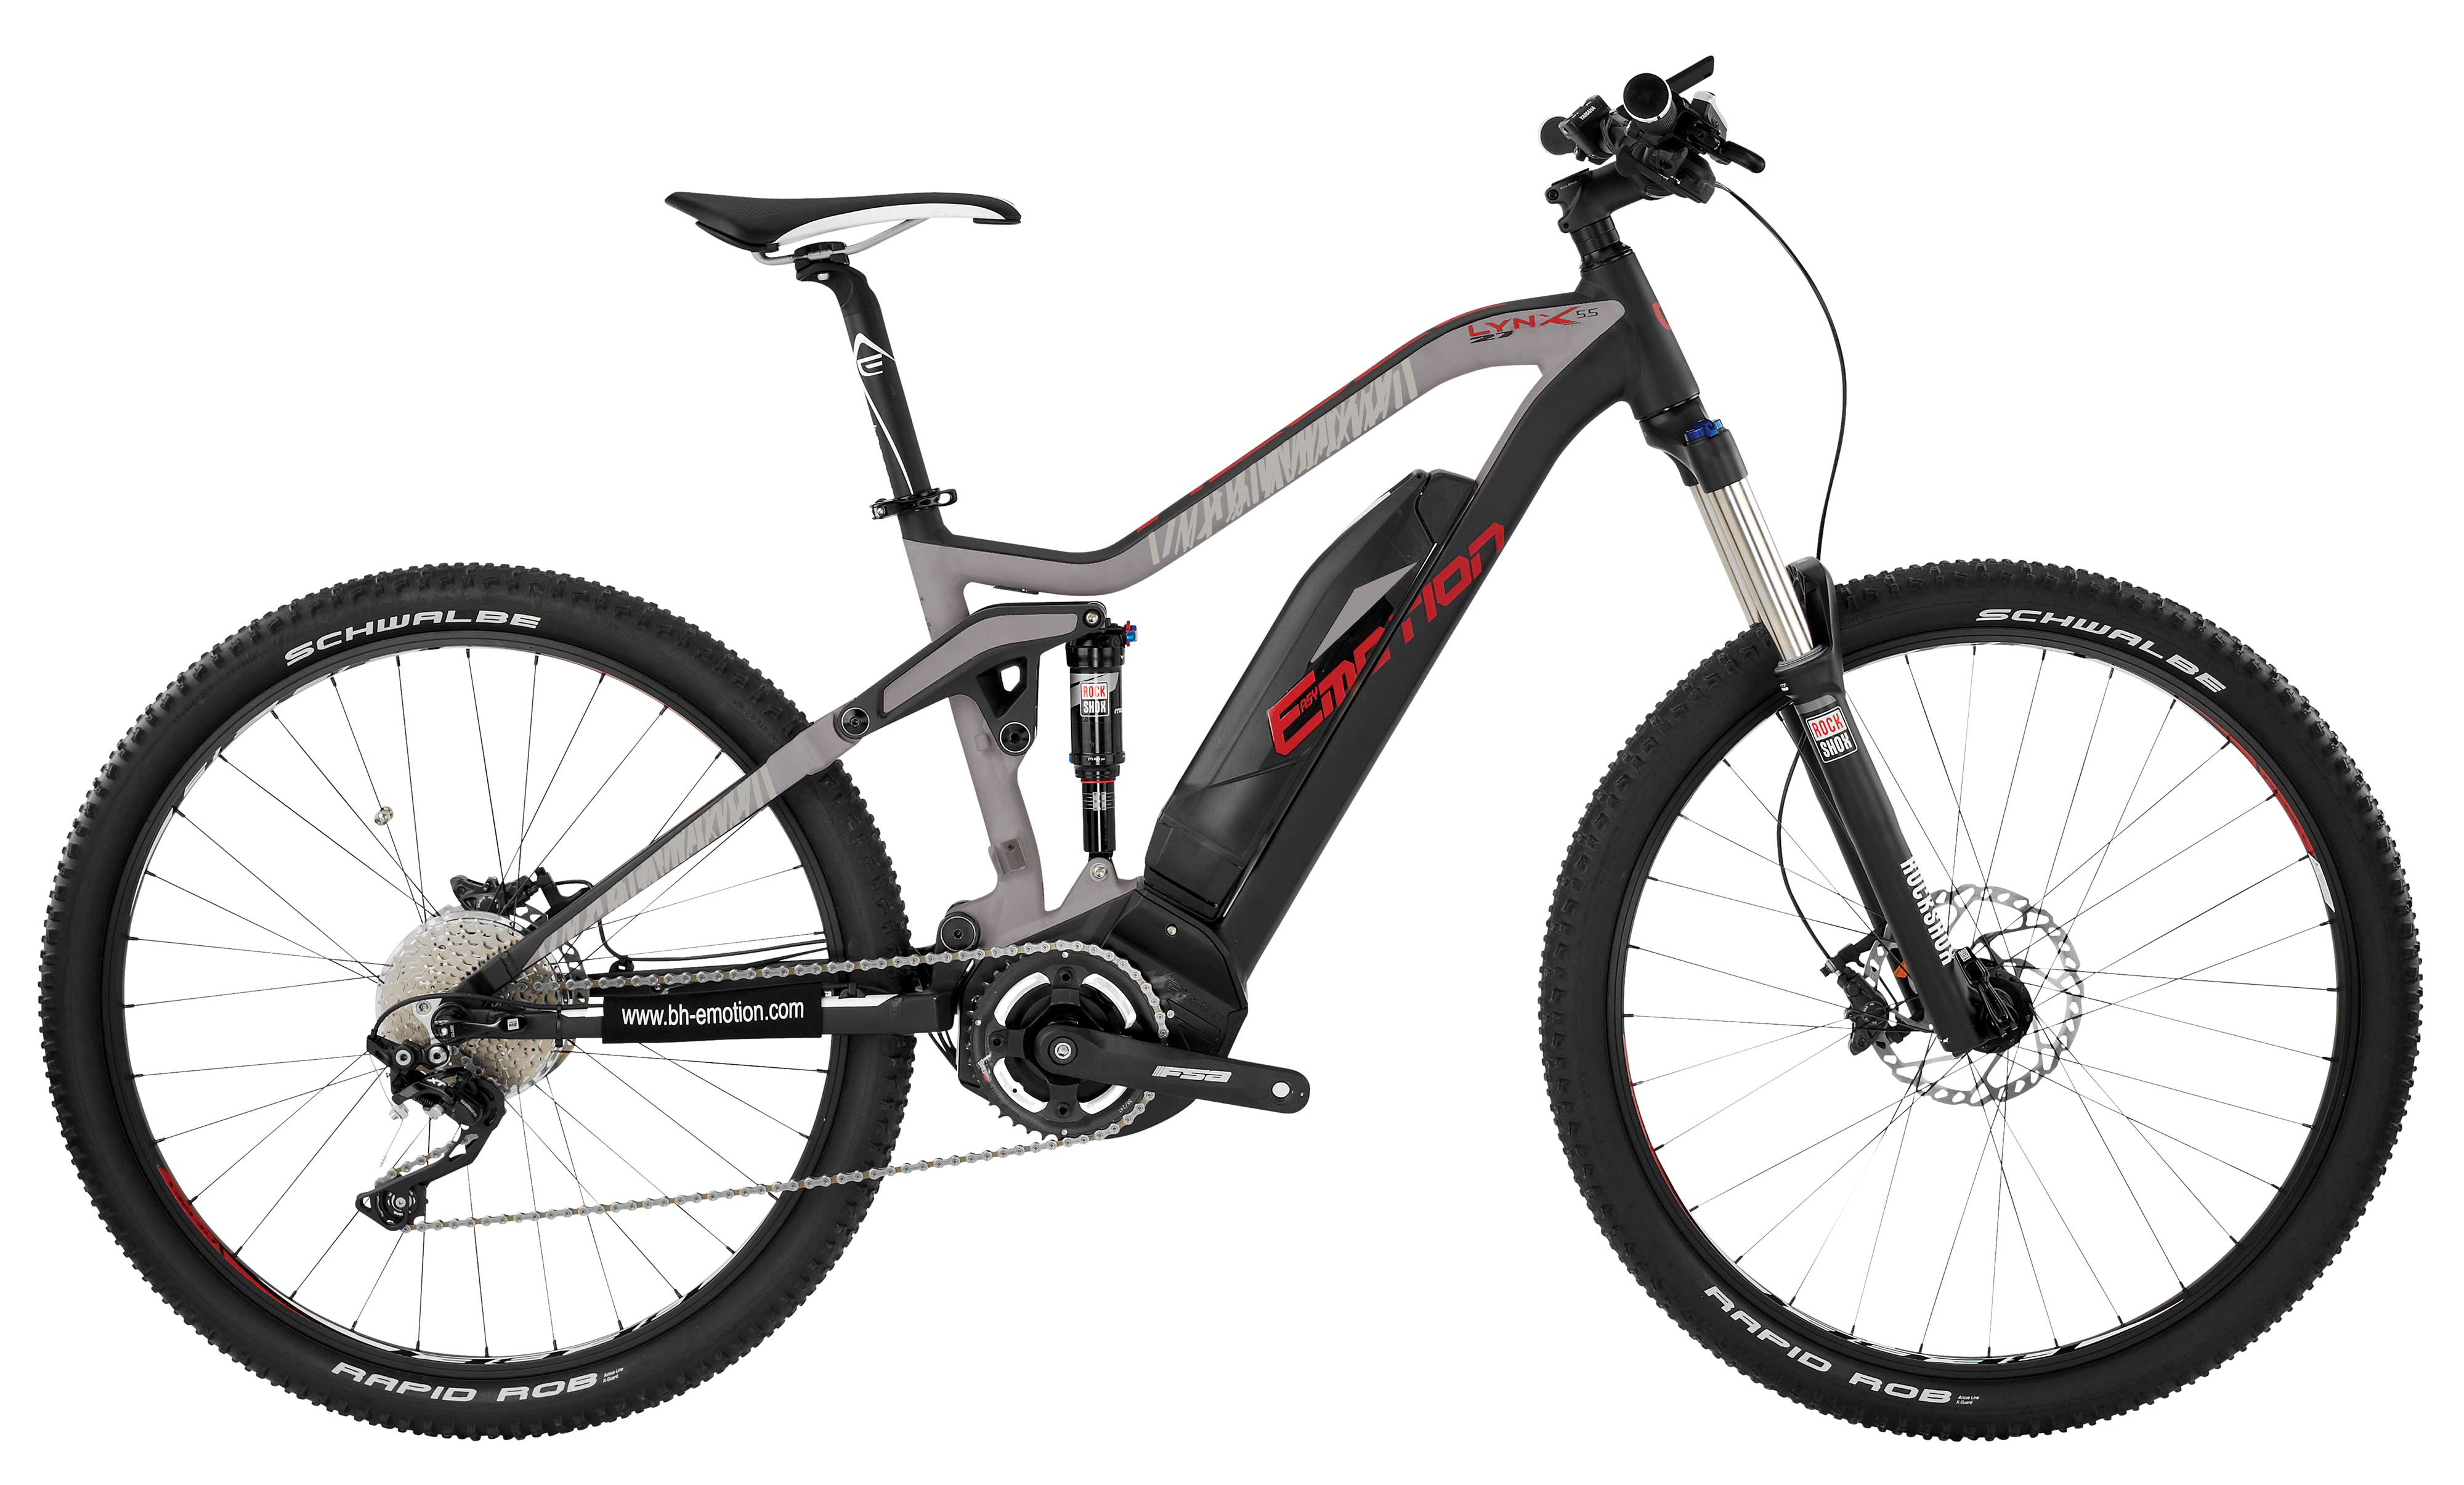 bh electrifies the trail with yamaha powered e lynx and. Black Bedroom Furniture Sets. Home Design Ideas